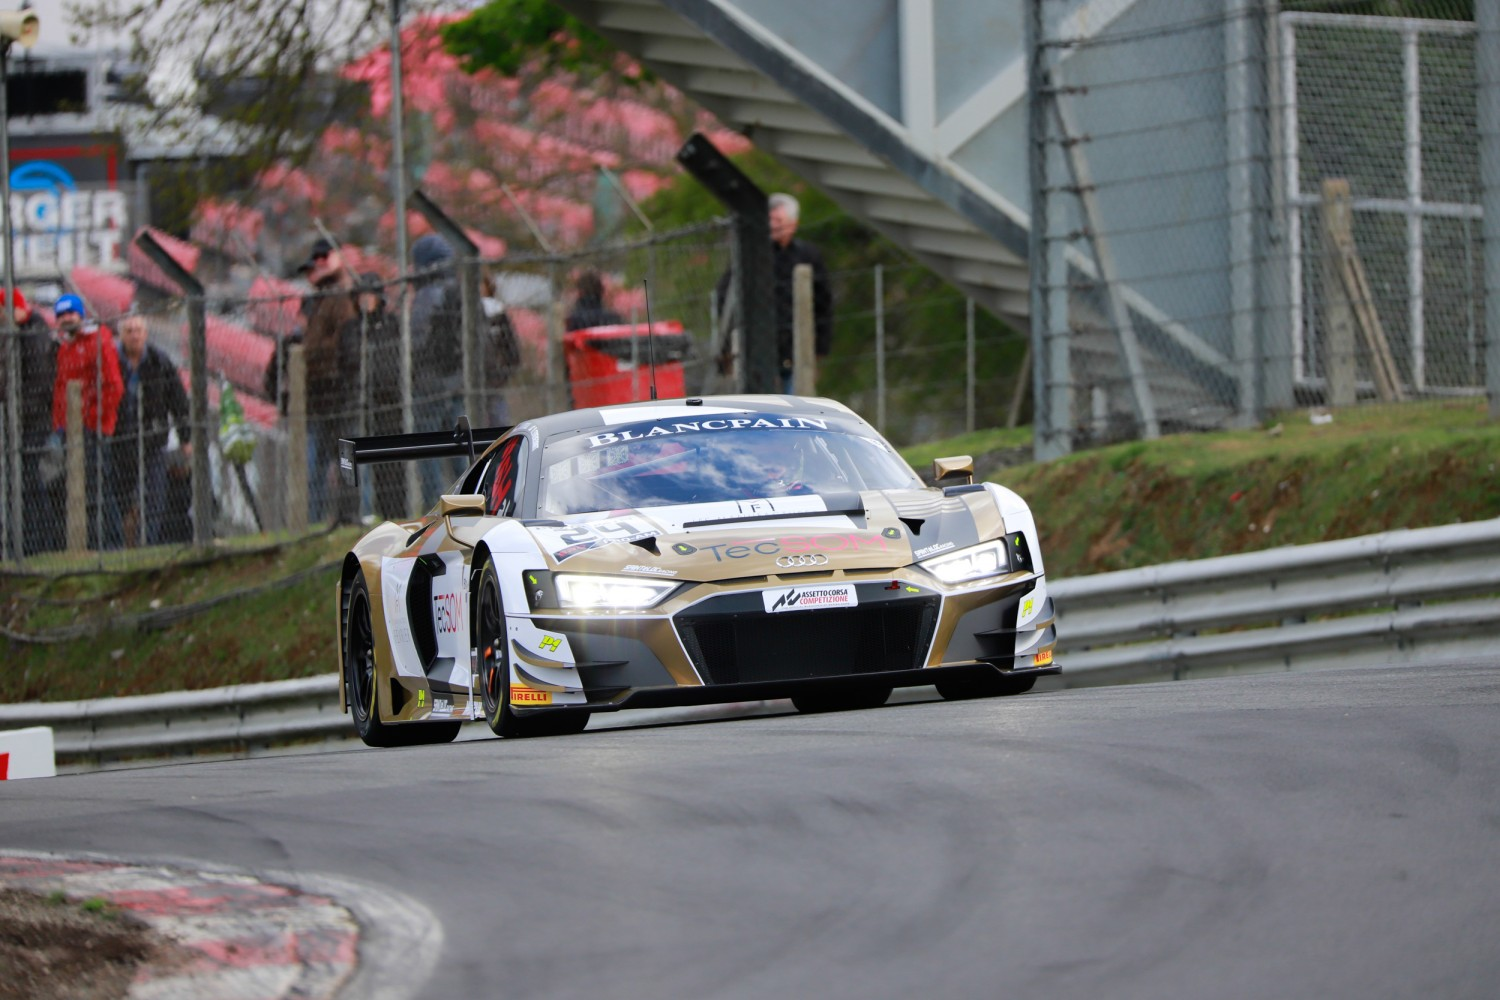 #24 Sainteloc Racing FRA Audi R8 LMS GT3 2019 Nyls Stievenart FRA Stéphane Ortelli MCO Pro-Am Cup, Cars Only  | SRO / Patrick Hecq Photography